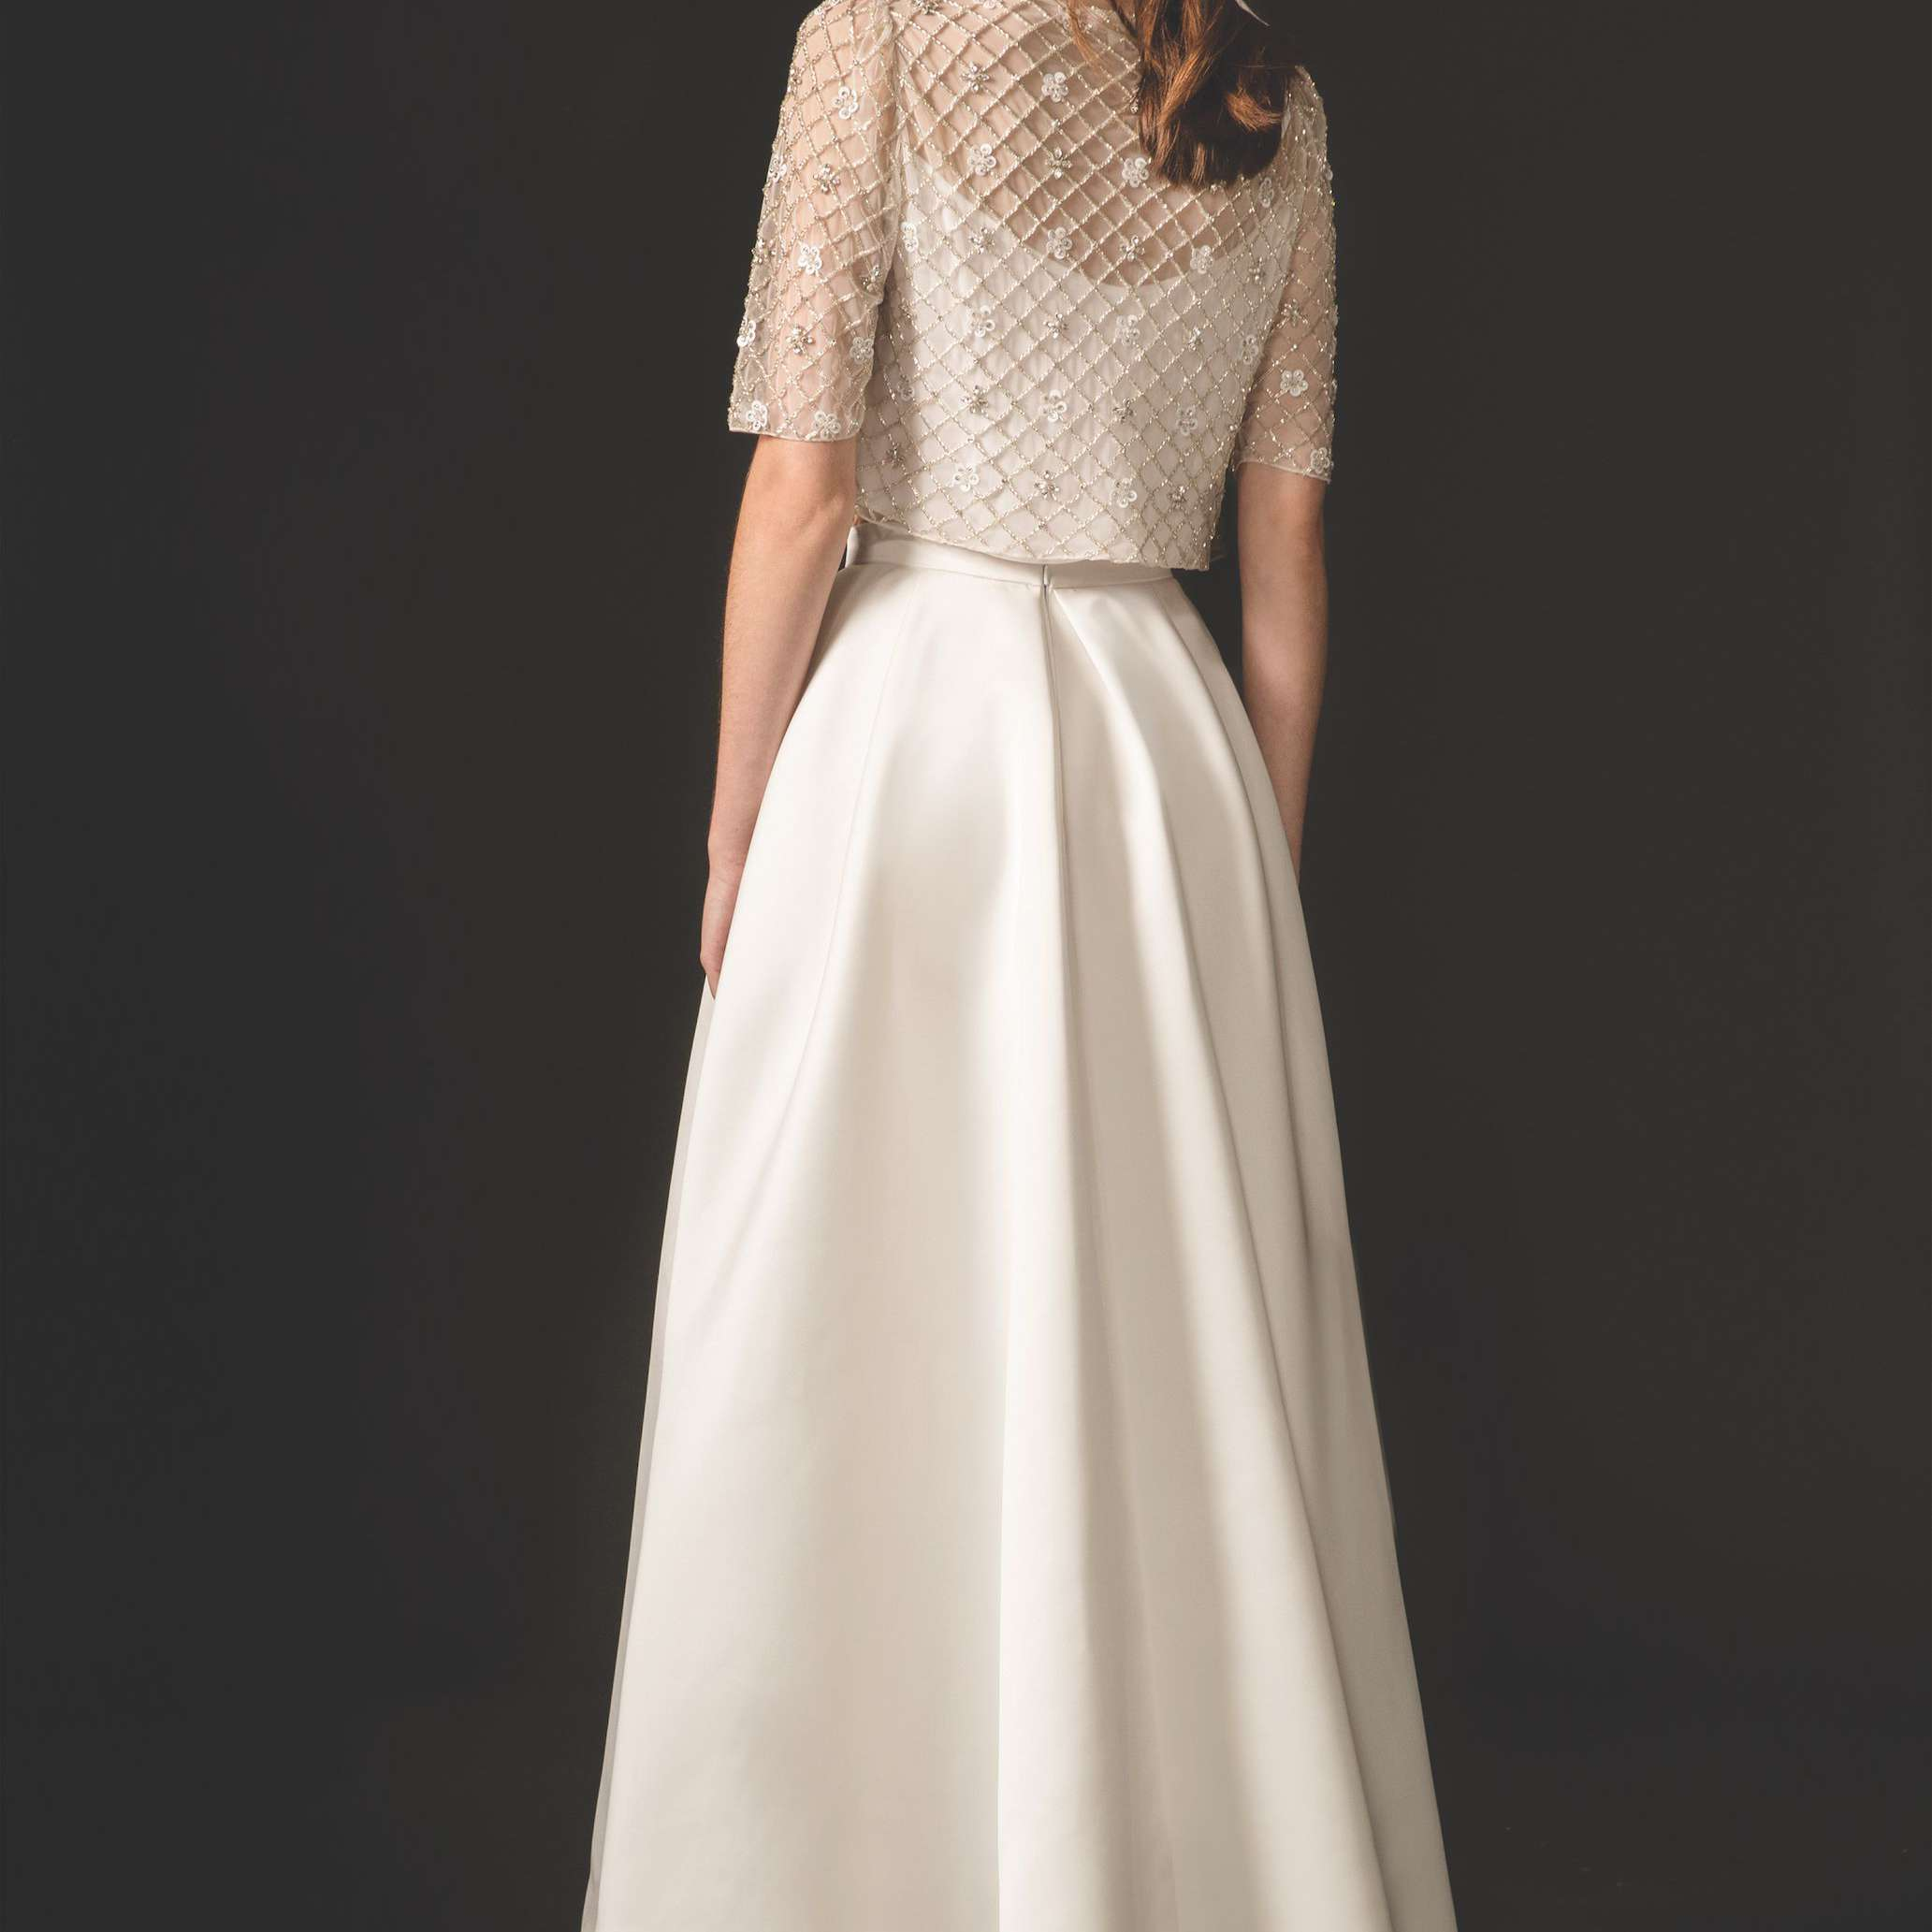 Model in satin gown with beaded short-sleeved top